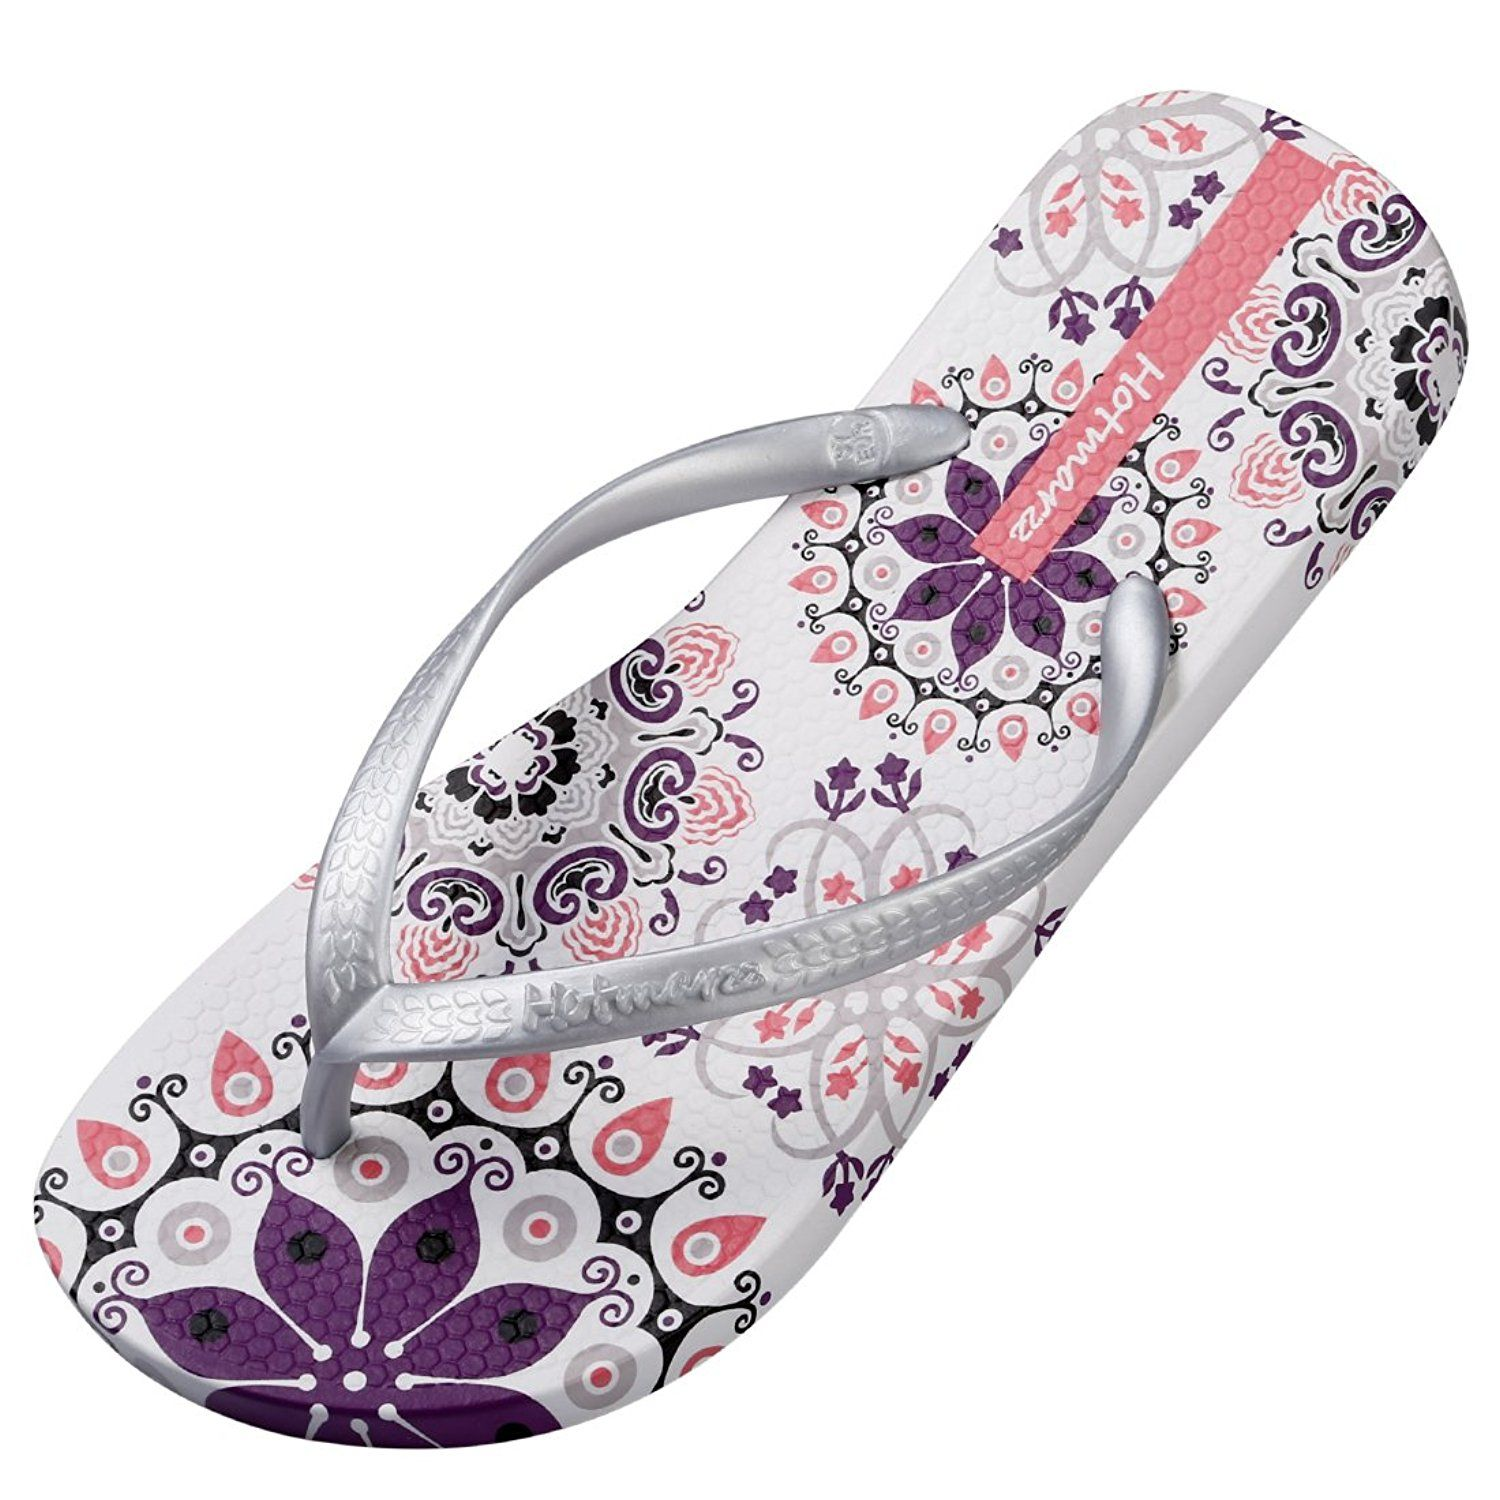 ad138fbff82d Hotmarzz Women s Flip Flops Bohemia Floral Print Sandals Beach Slippers --  Click image to review more details. (This is an affiliate link)  womenshoe